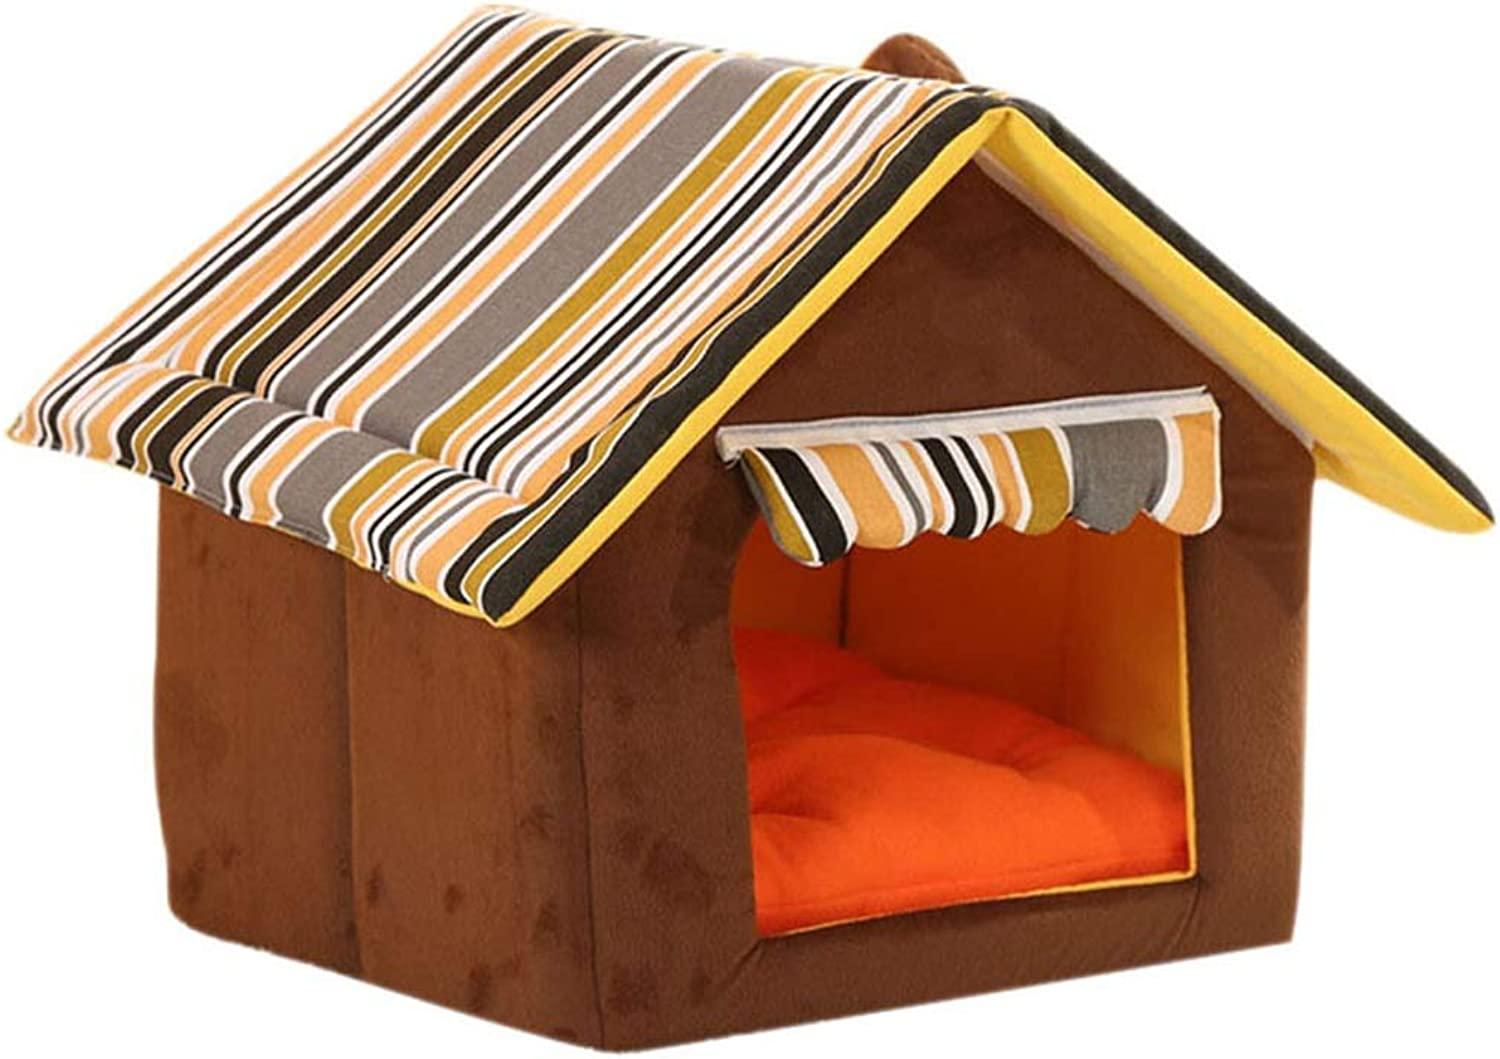 Kennel, Dog House Small Medium Dog Pet Nest Mat Cat Litter Winter Washable Dog Bed Room Five colors Optional (color   Brown, Size   S)